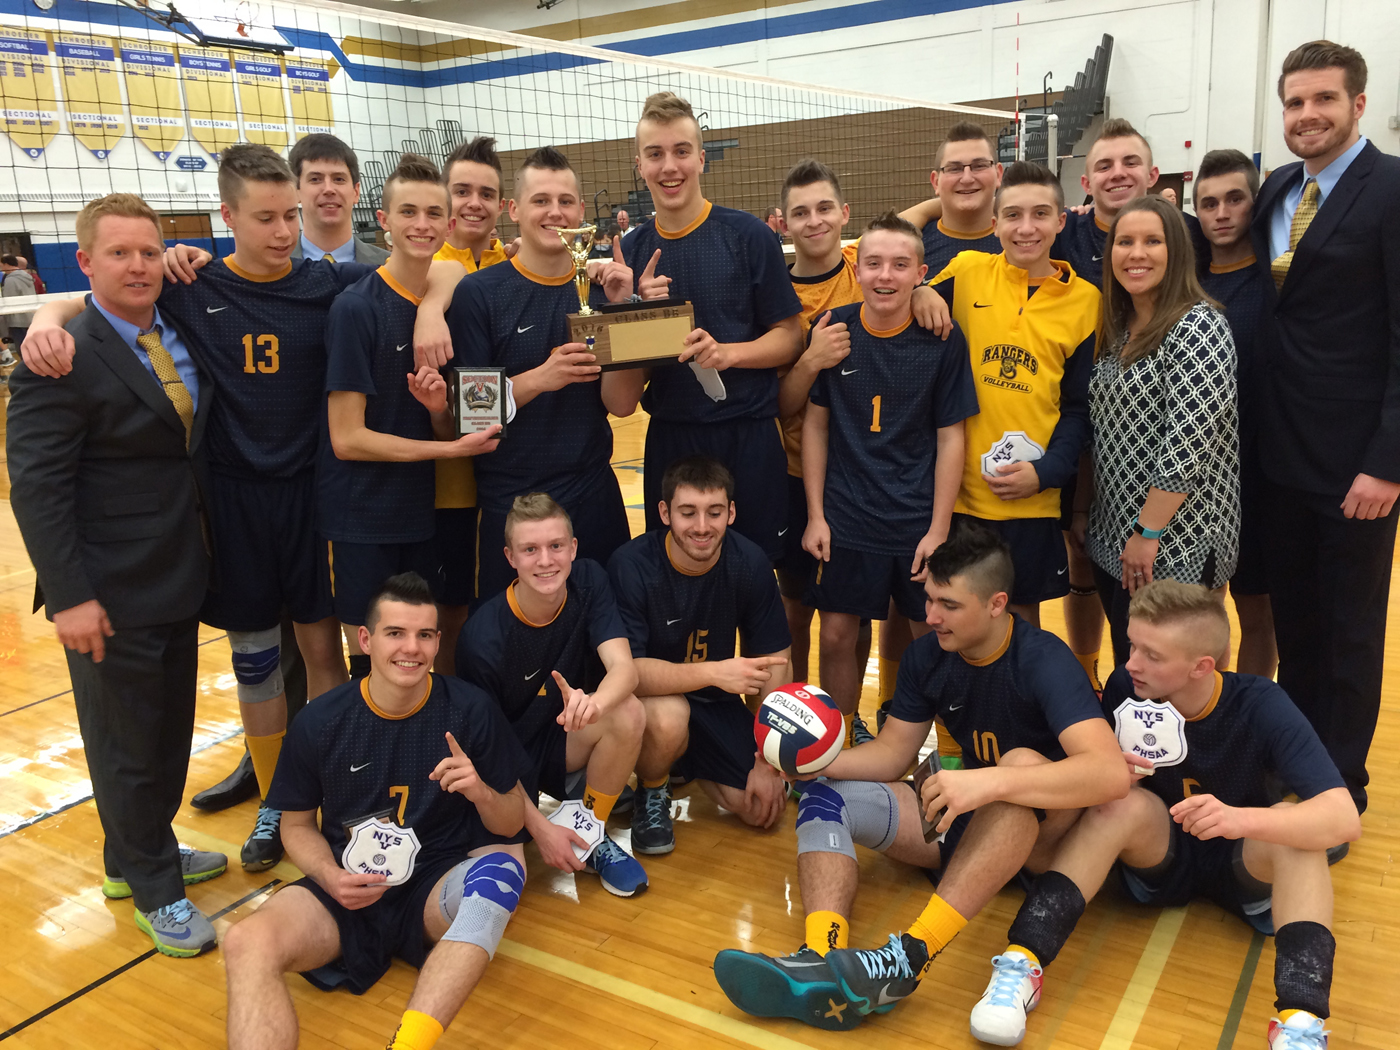 Spencerport Rangers Boys' Volleyball Team wins their third volleyball title. Provided photo